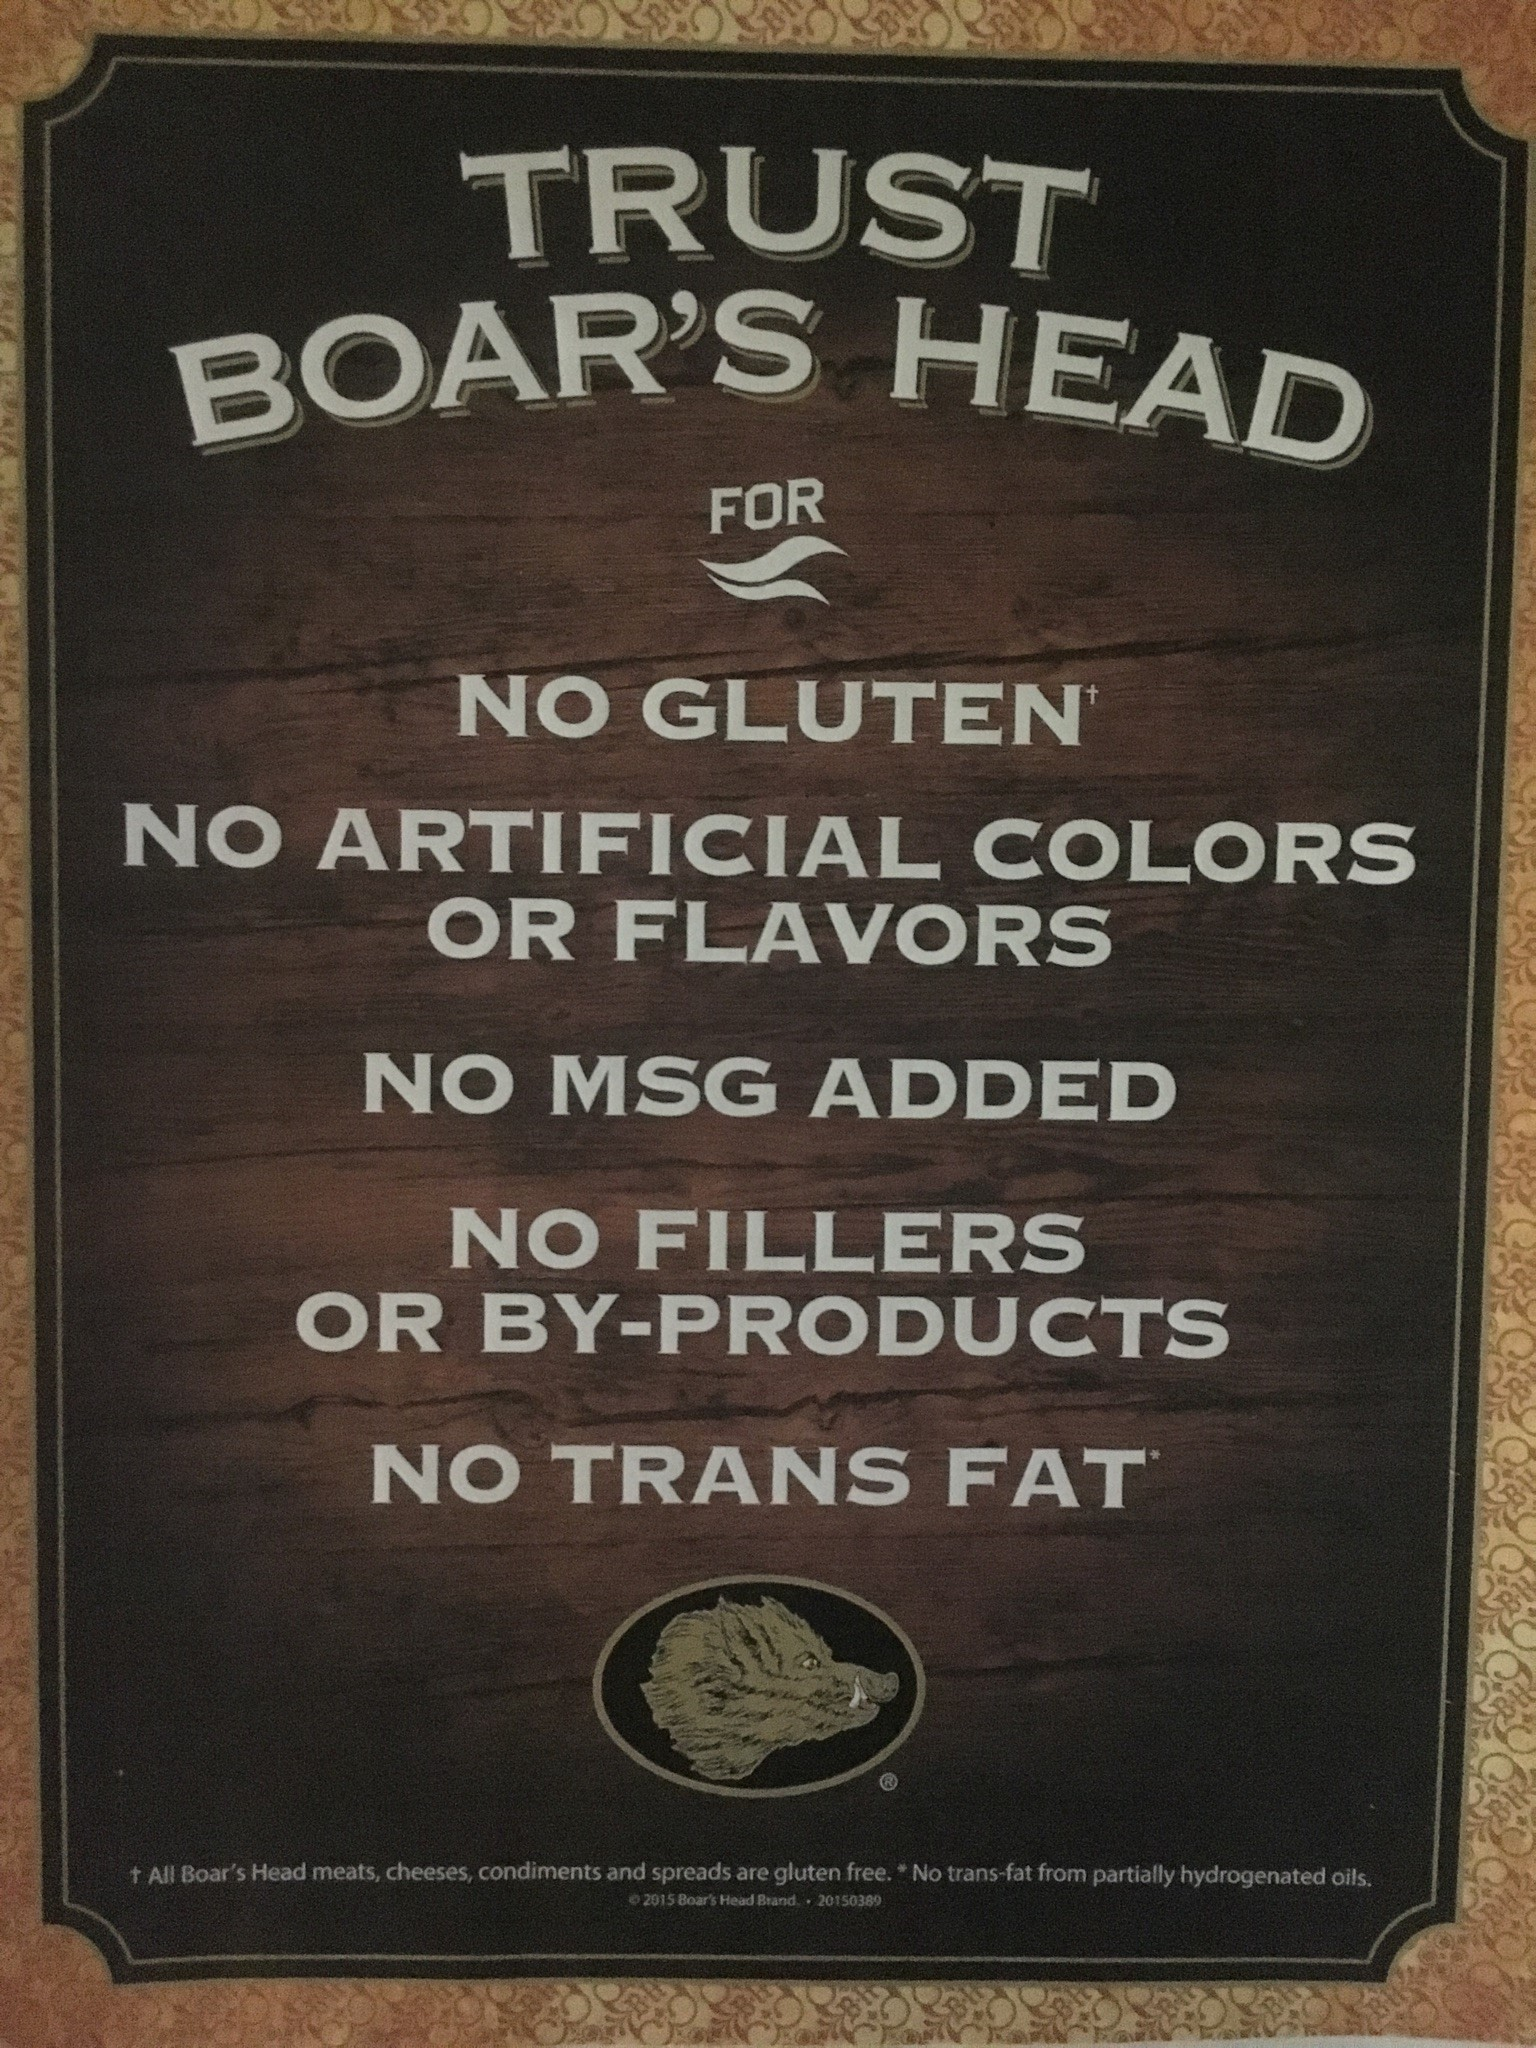 Trust Boars Head for No Gluten, No Artificial Colors or Flavors, No MSG Added, No Fillers or By-Products, No Trans Fat